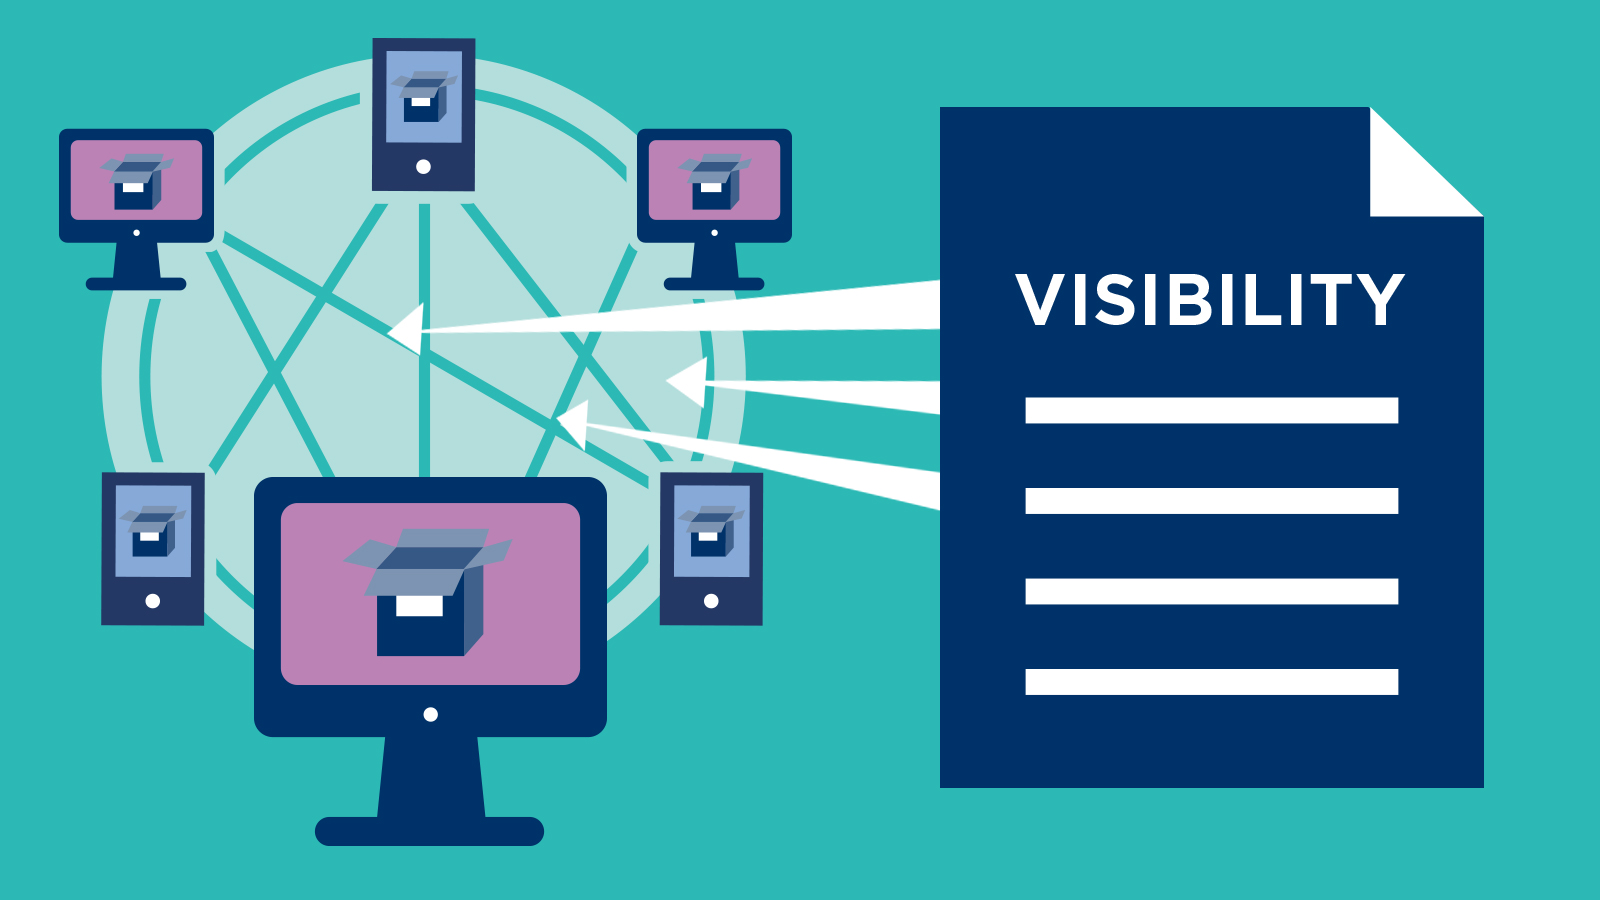 Visibility: Making Traceability and Transparency Possible